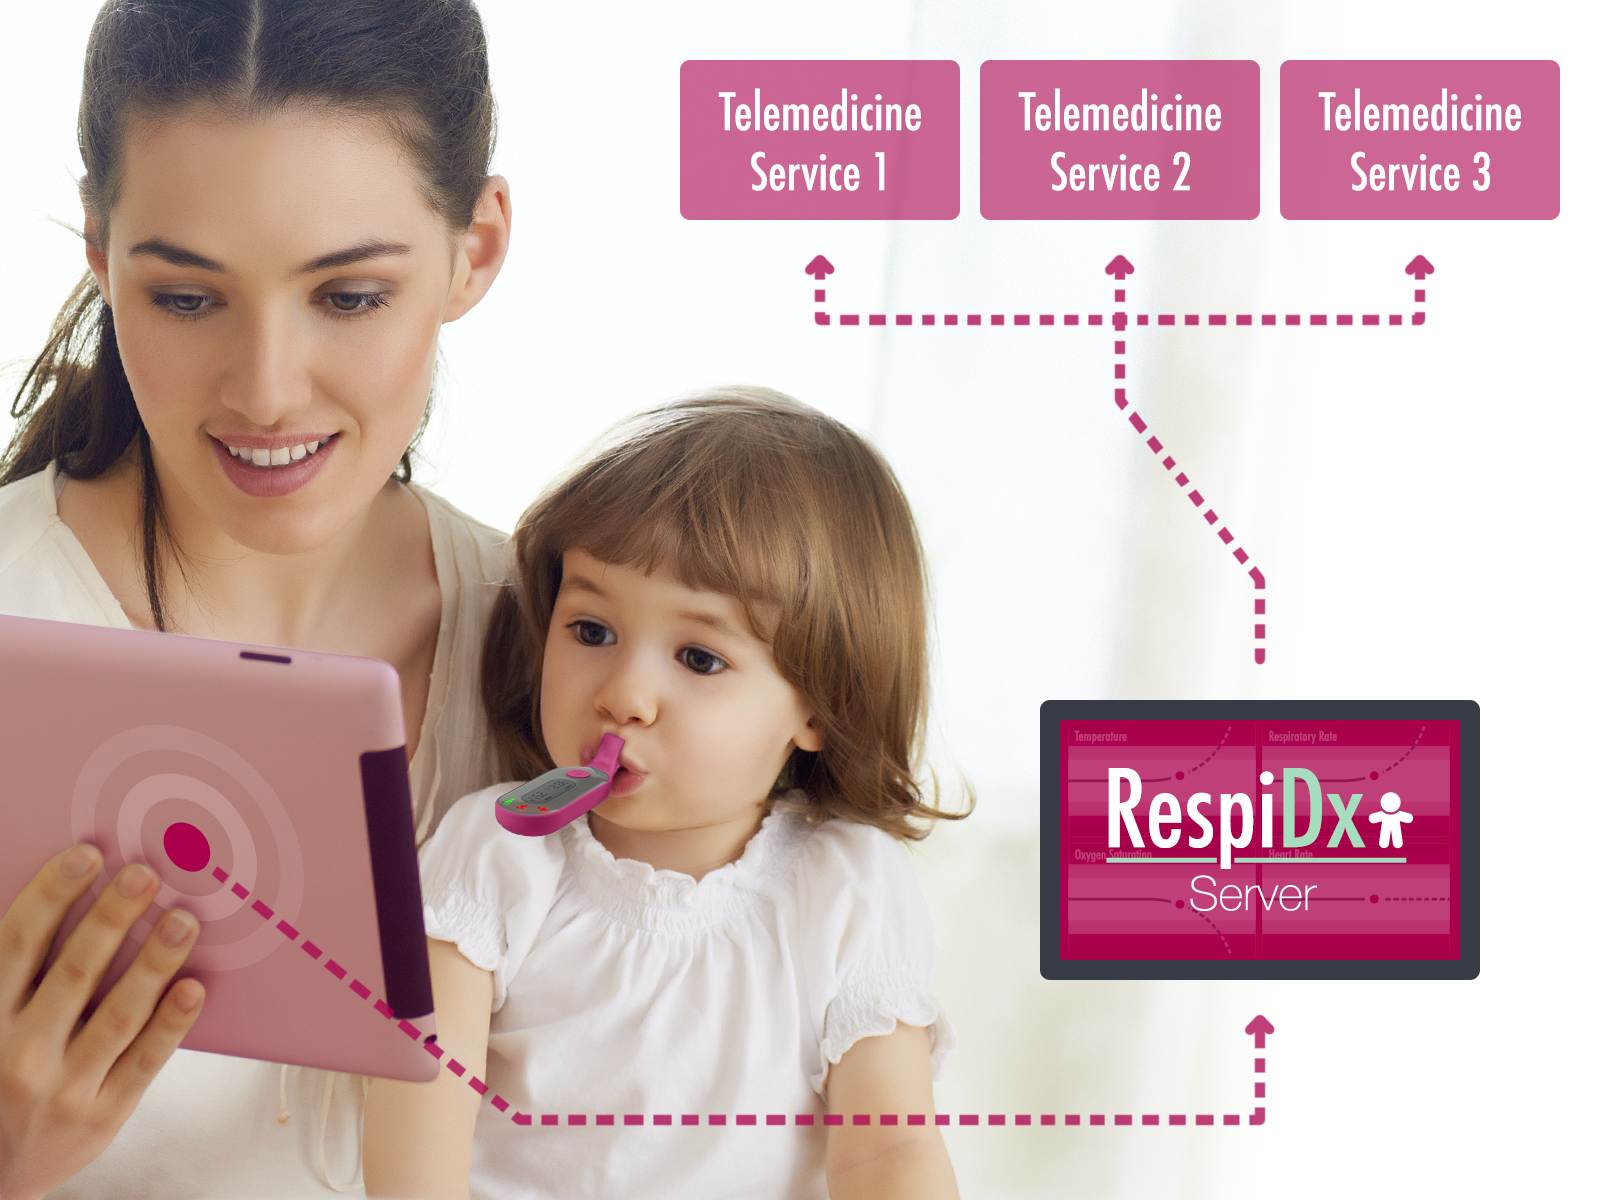 The Respimometer is being designed to measure a variety of vital signs as a tool for telemedicine. Photo courtesy of RespiDx